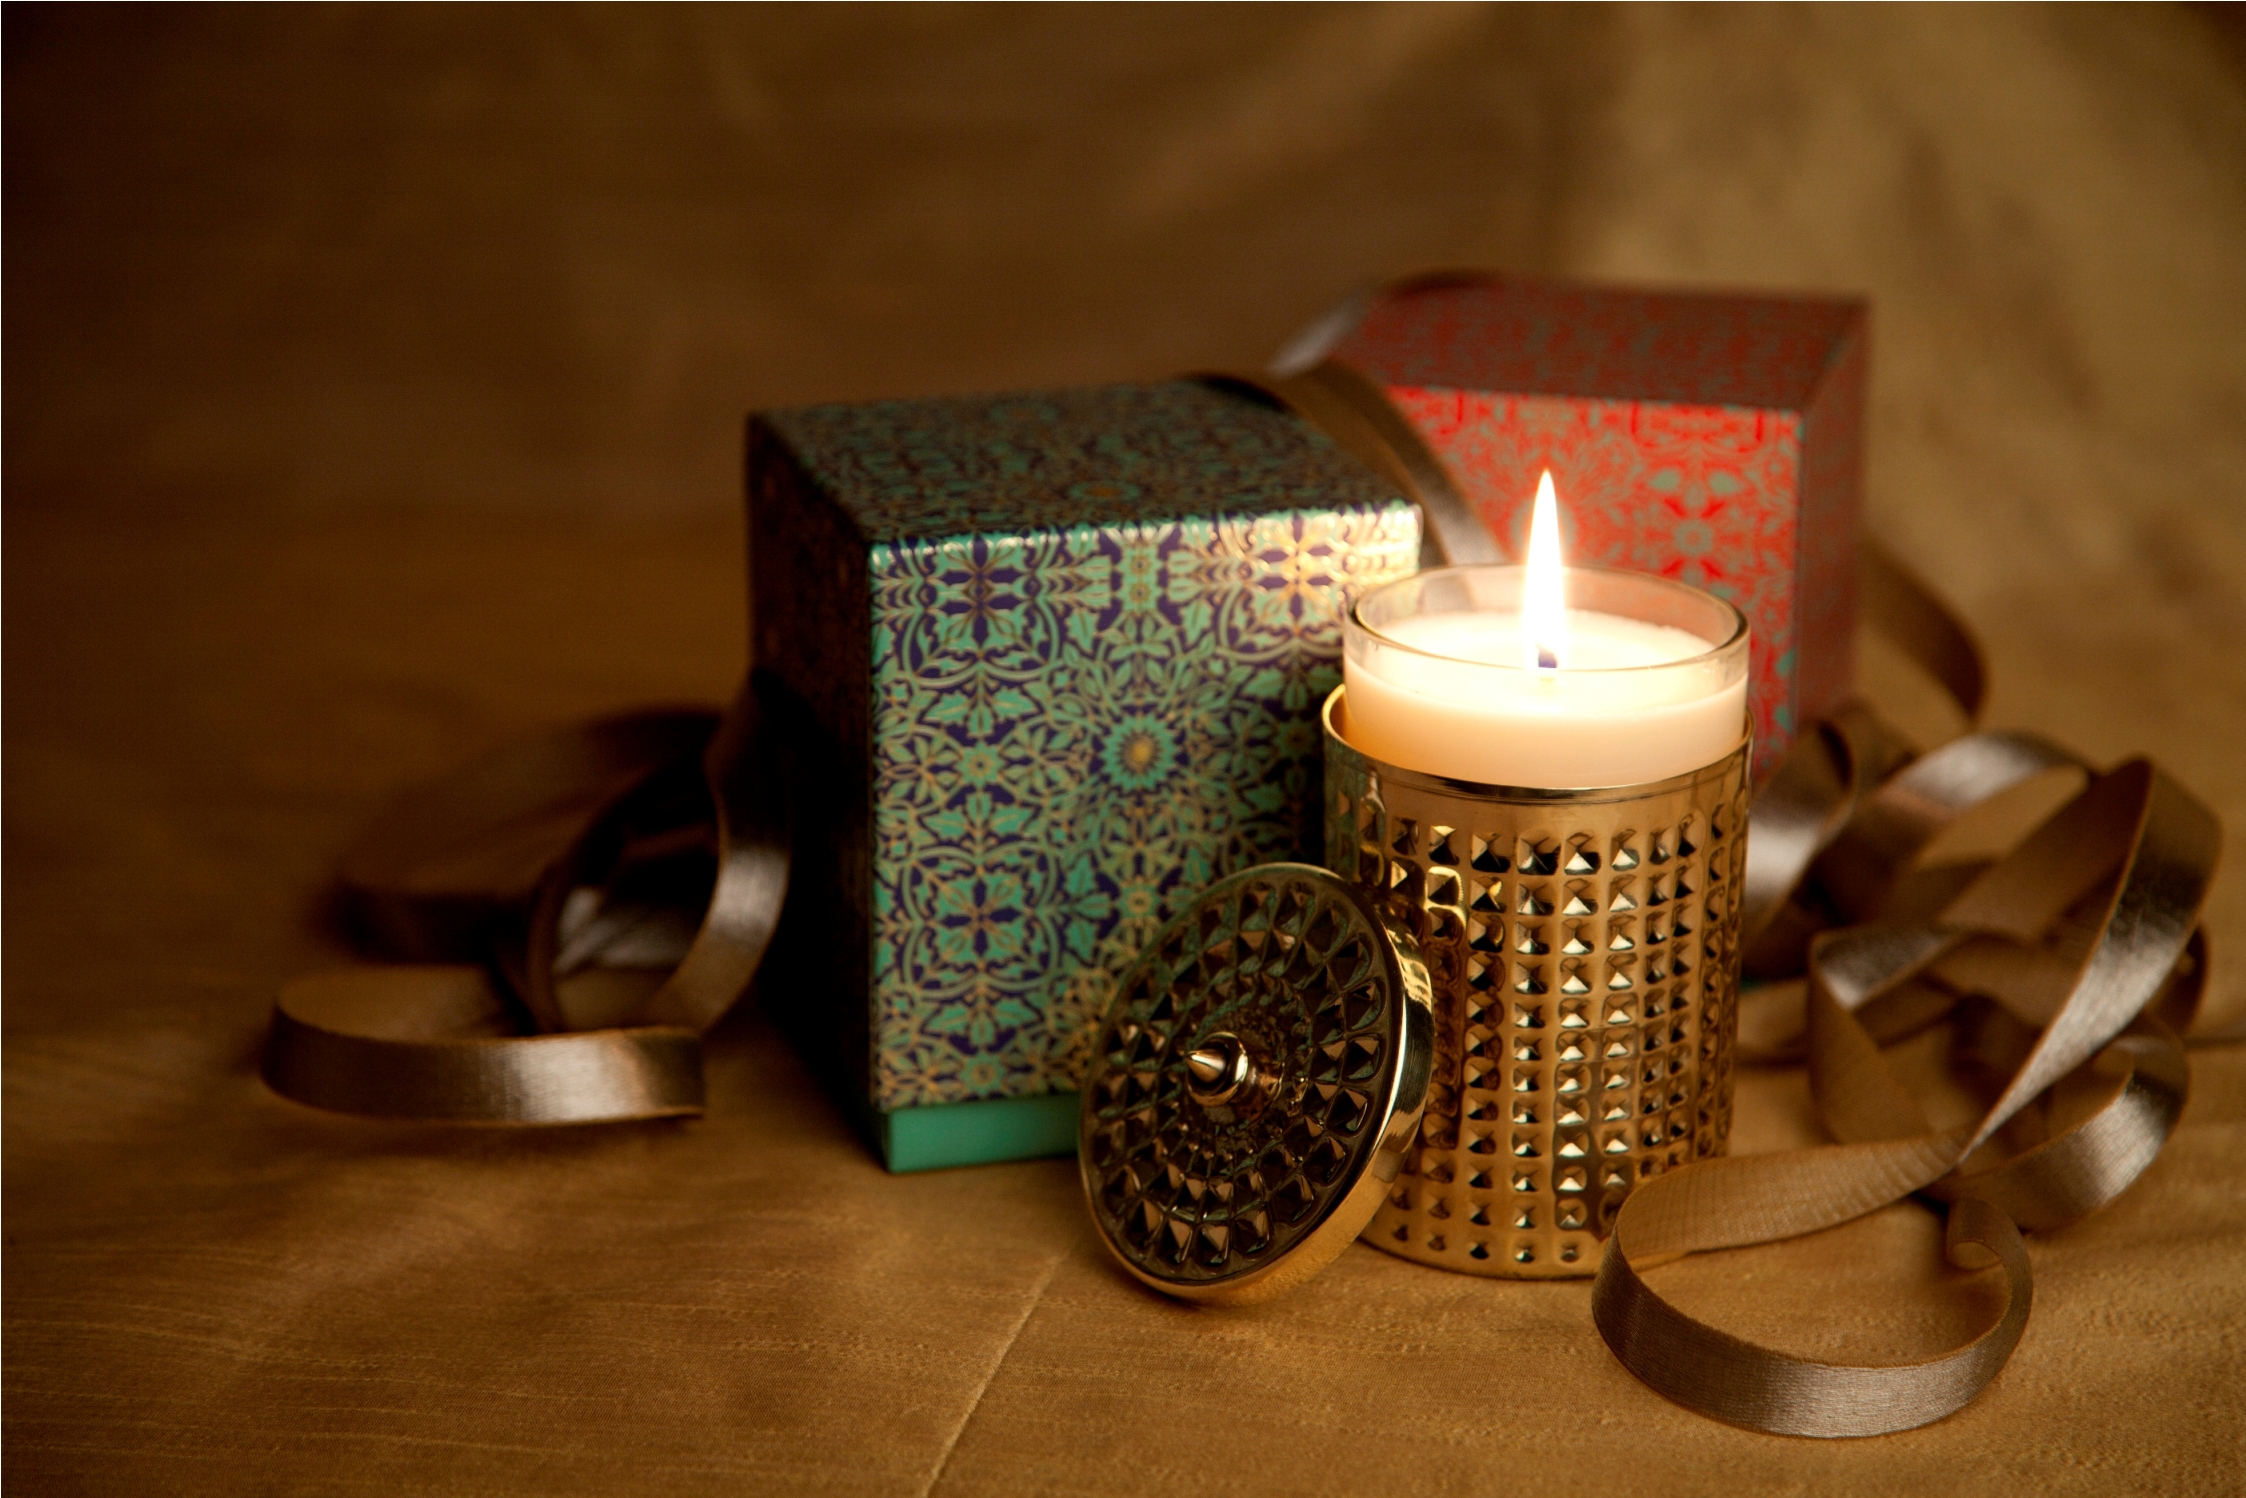 Madurai soy scented candle with brass holder by Kama Ayurveda